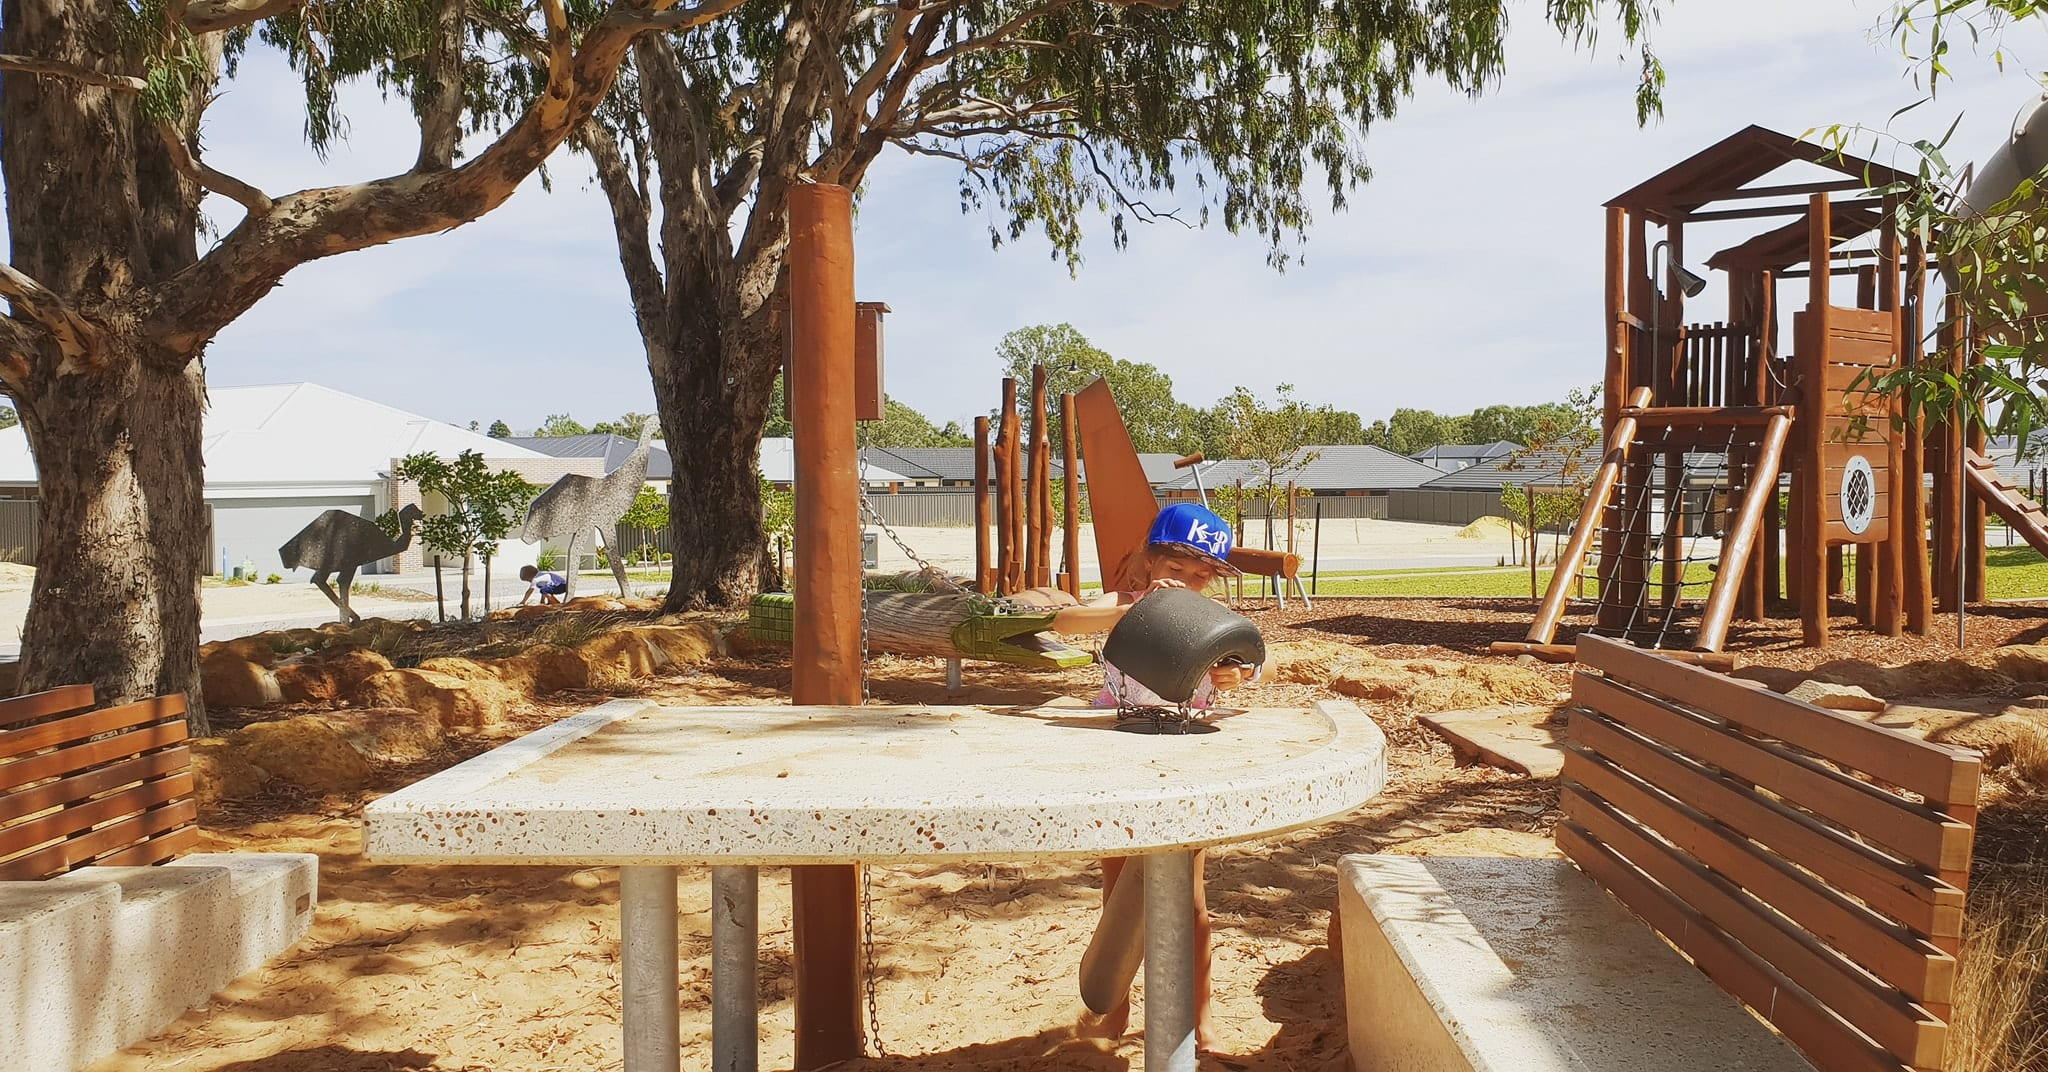 Noah's Playground, South Guildford